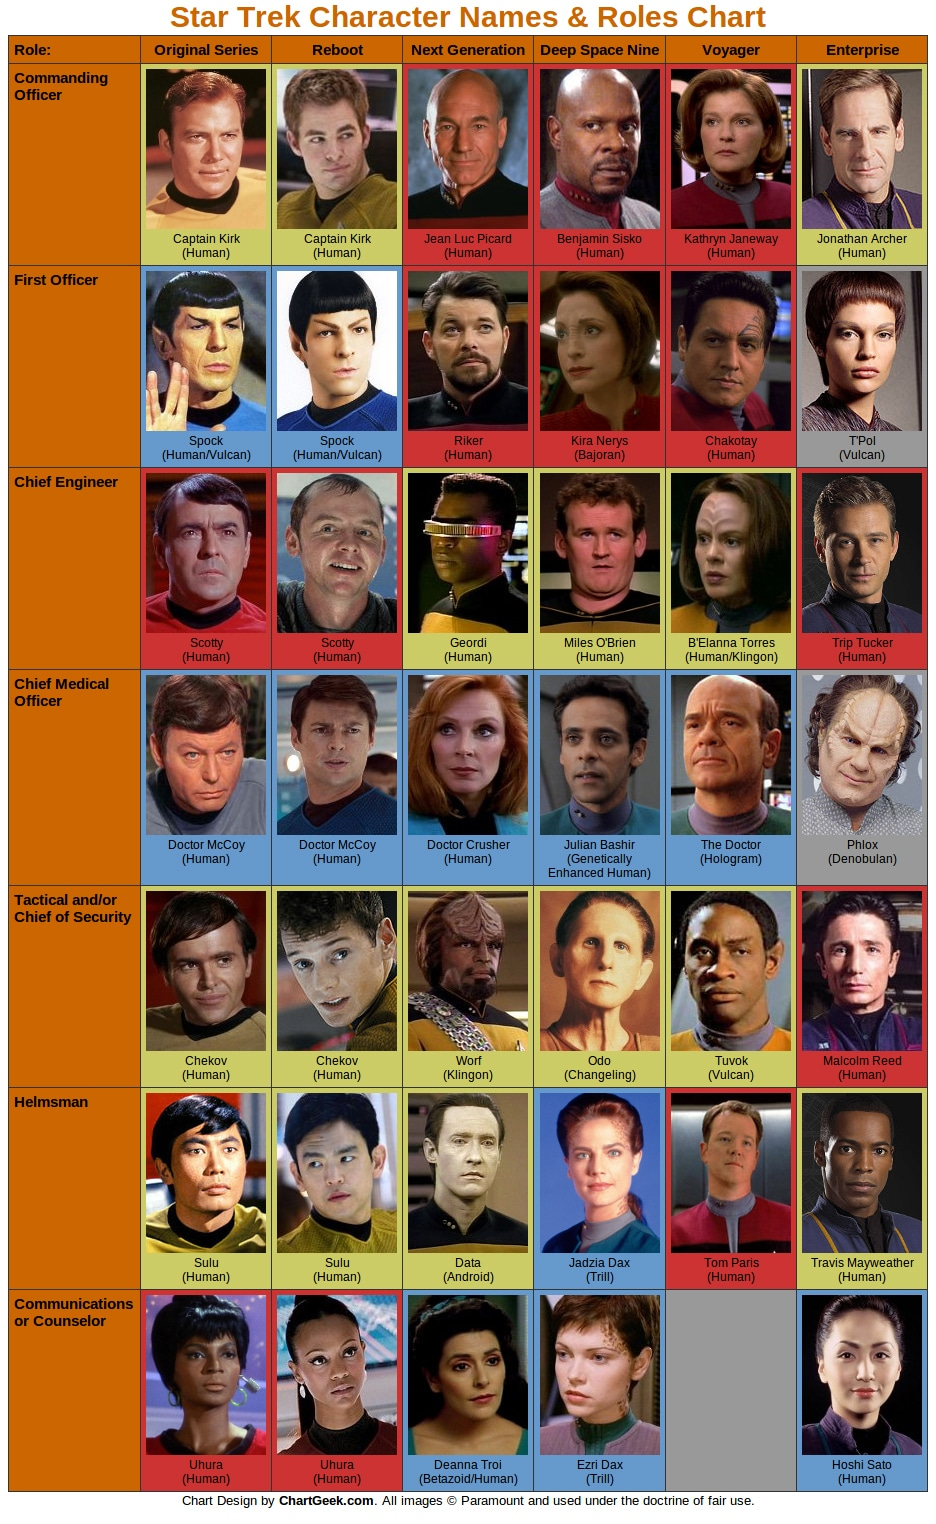 All The Main Star Trek Characters From 6 Versions In One Geeky Chart